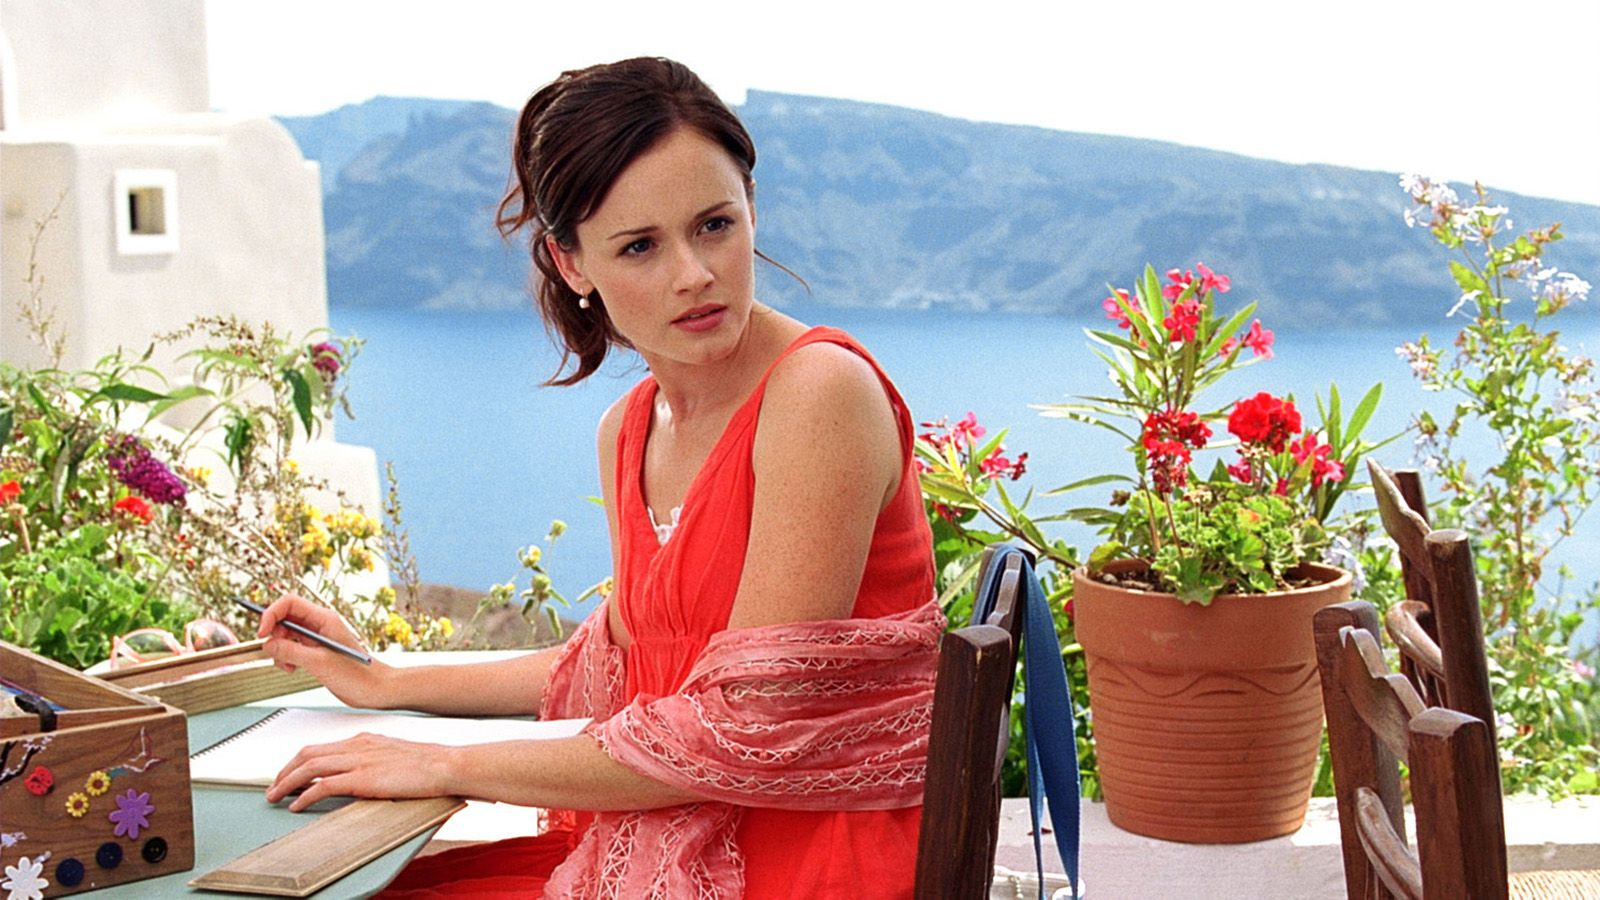 Alexis Bledel as Lena Kaligaris (The Sisterhood of the Traveling Pants)